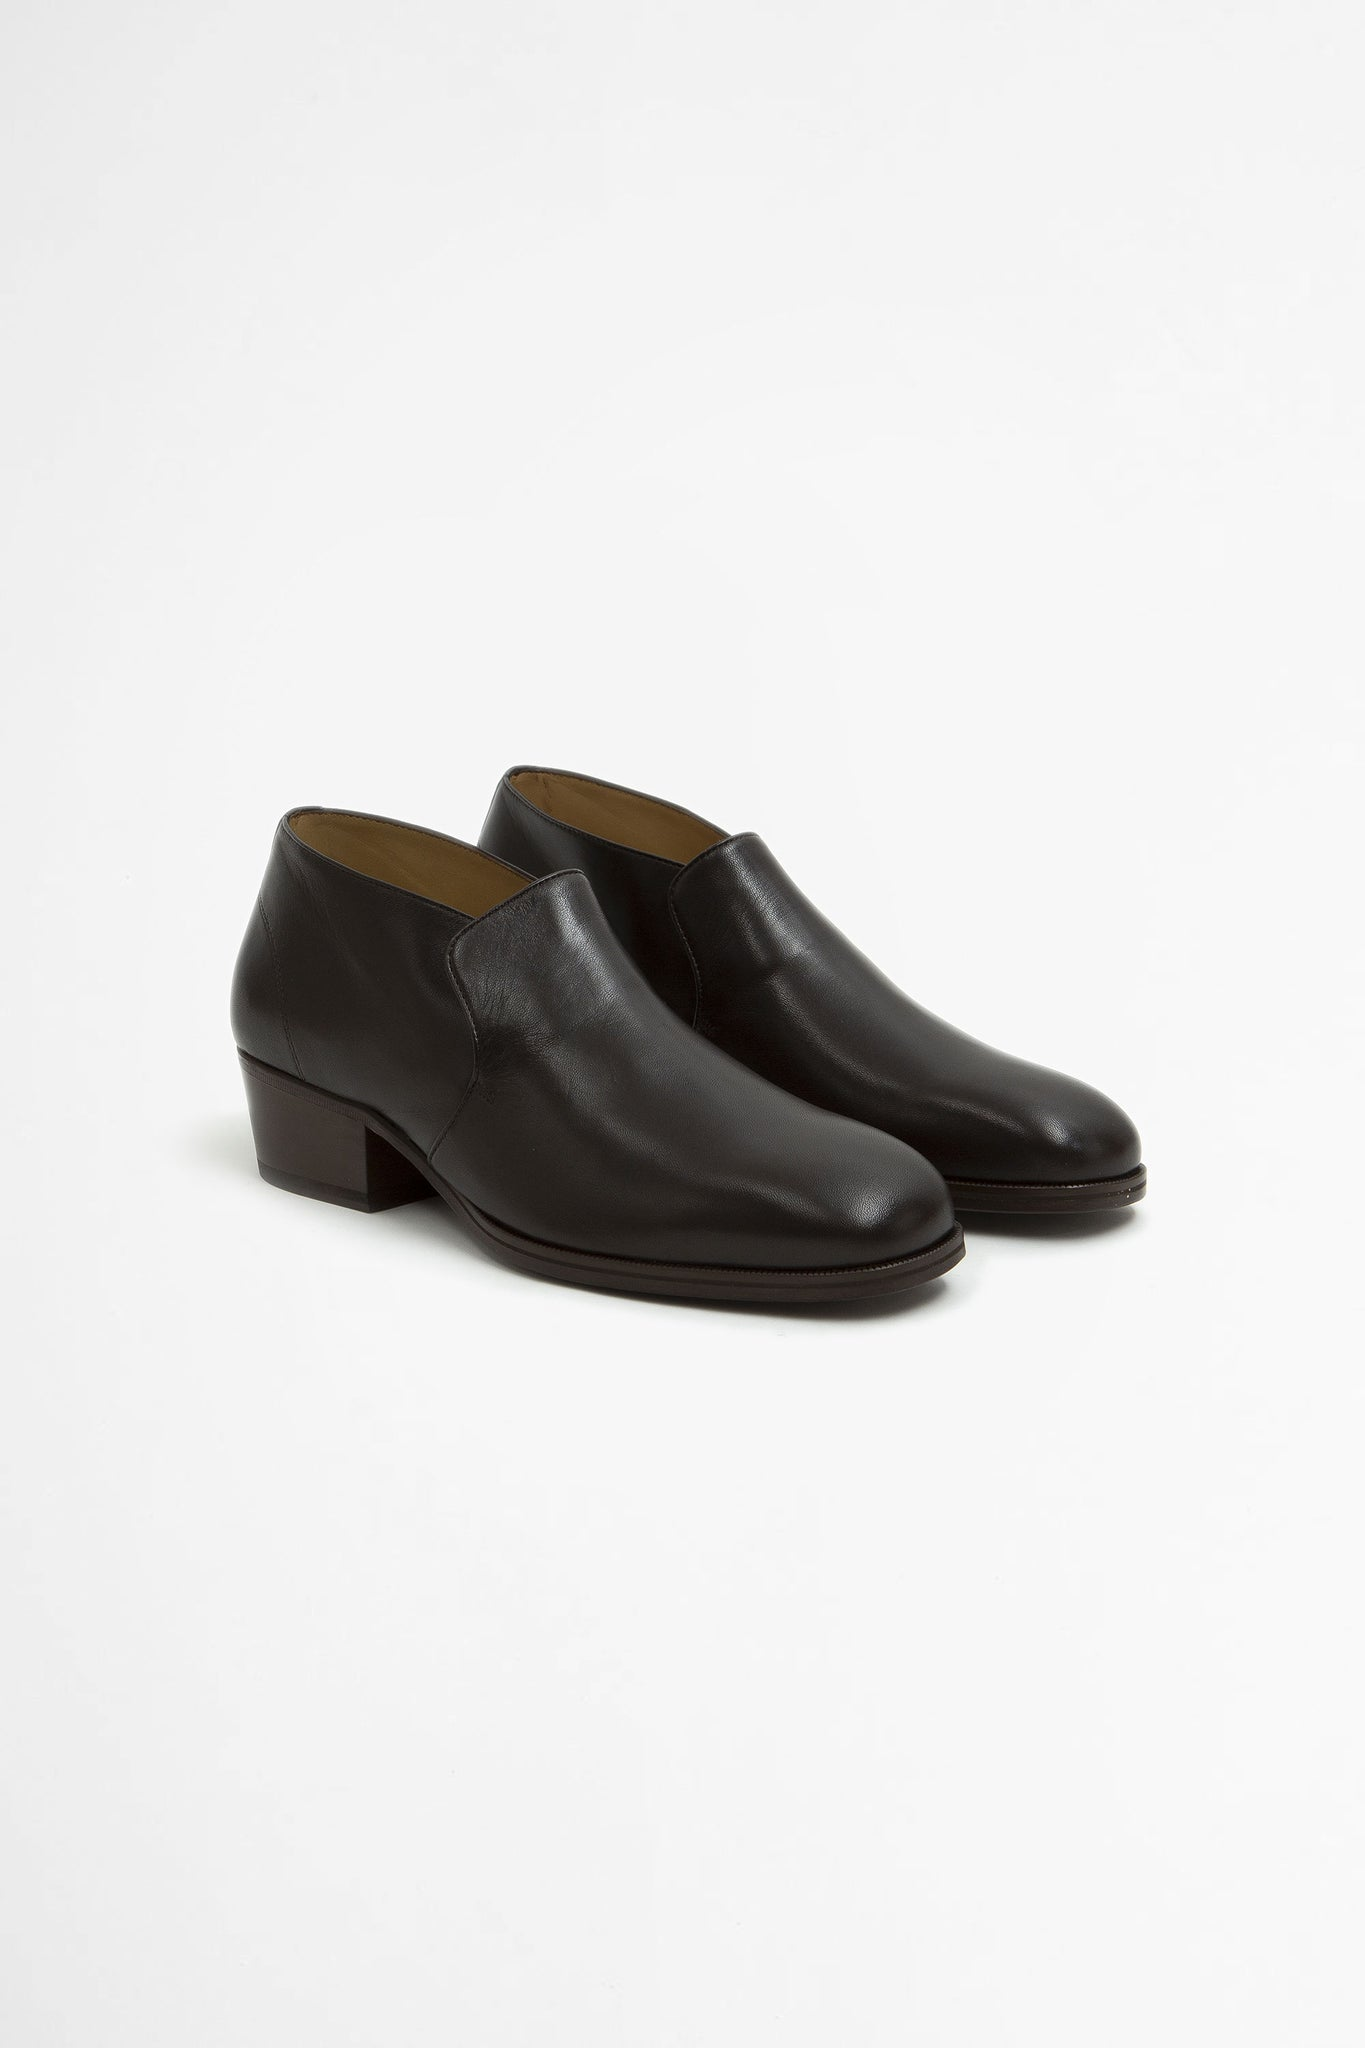 Low boots midnight brown